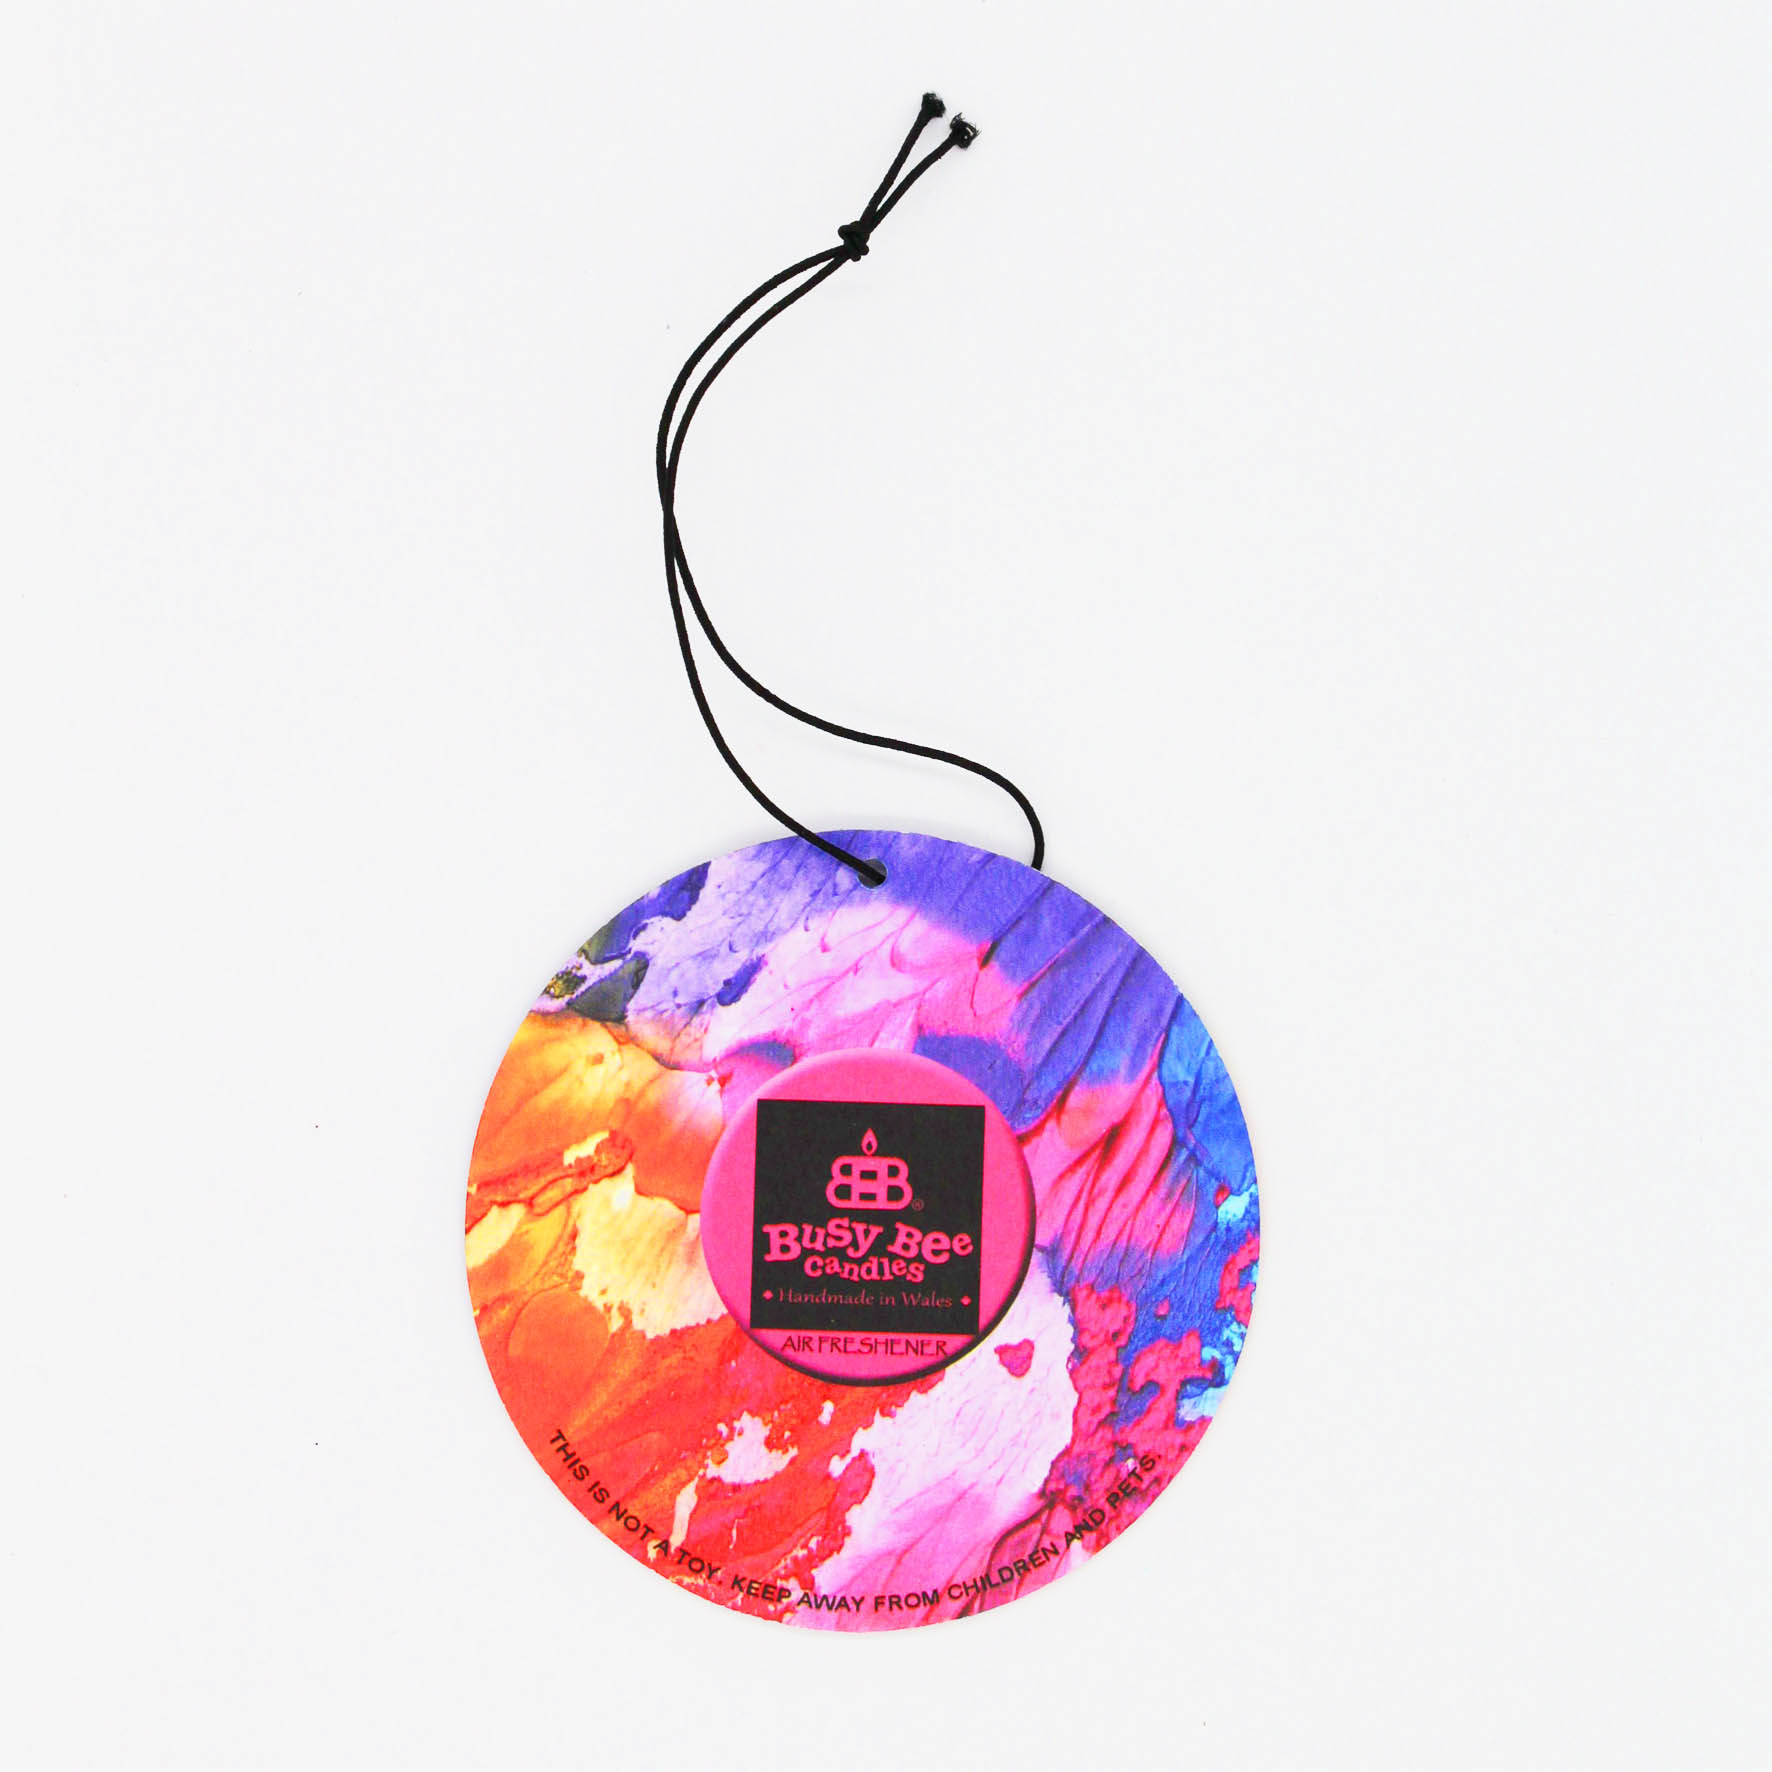 Revive Hanging Air Freshener